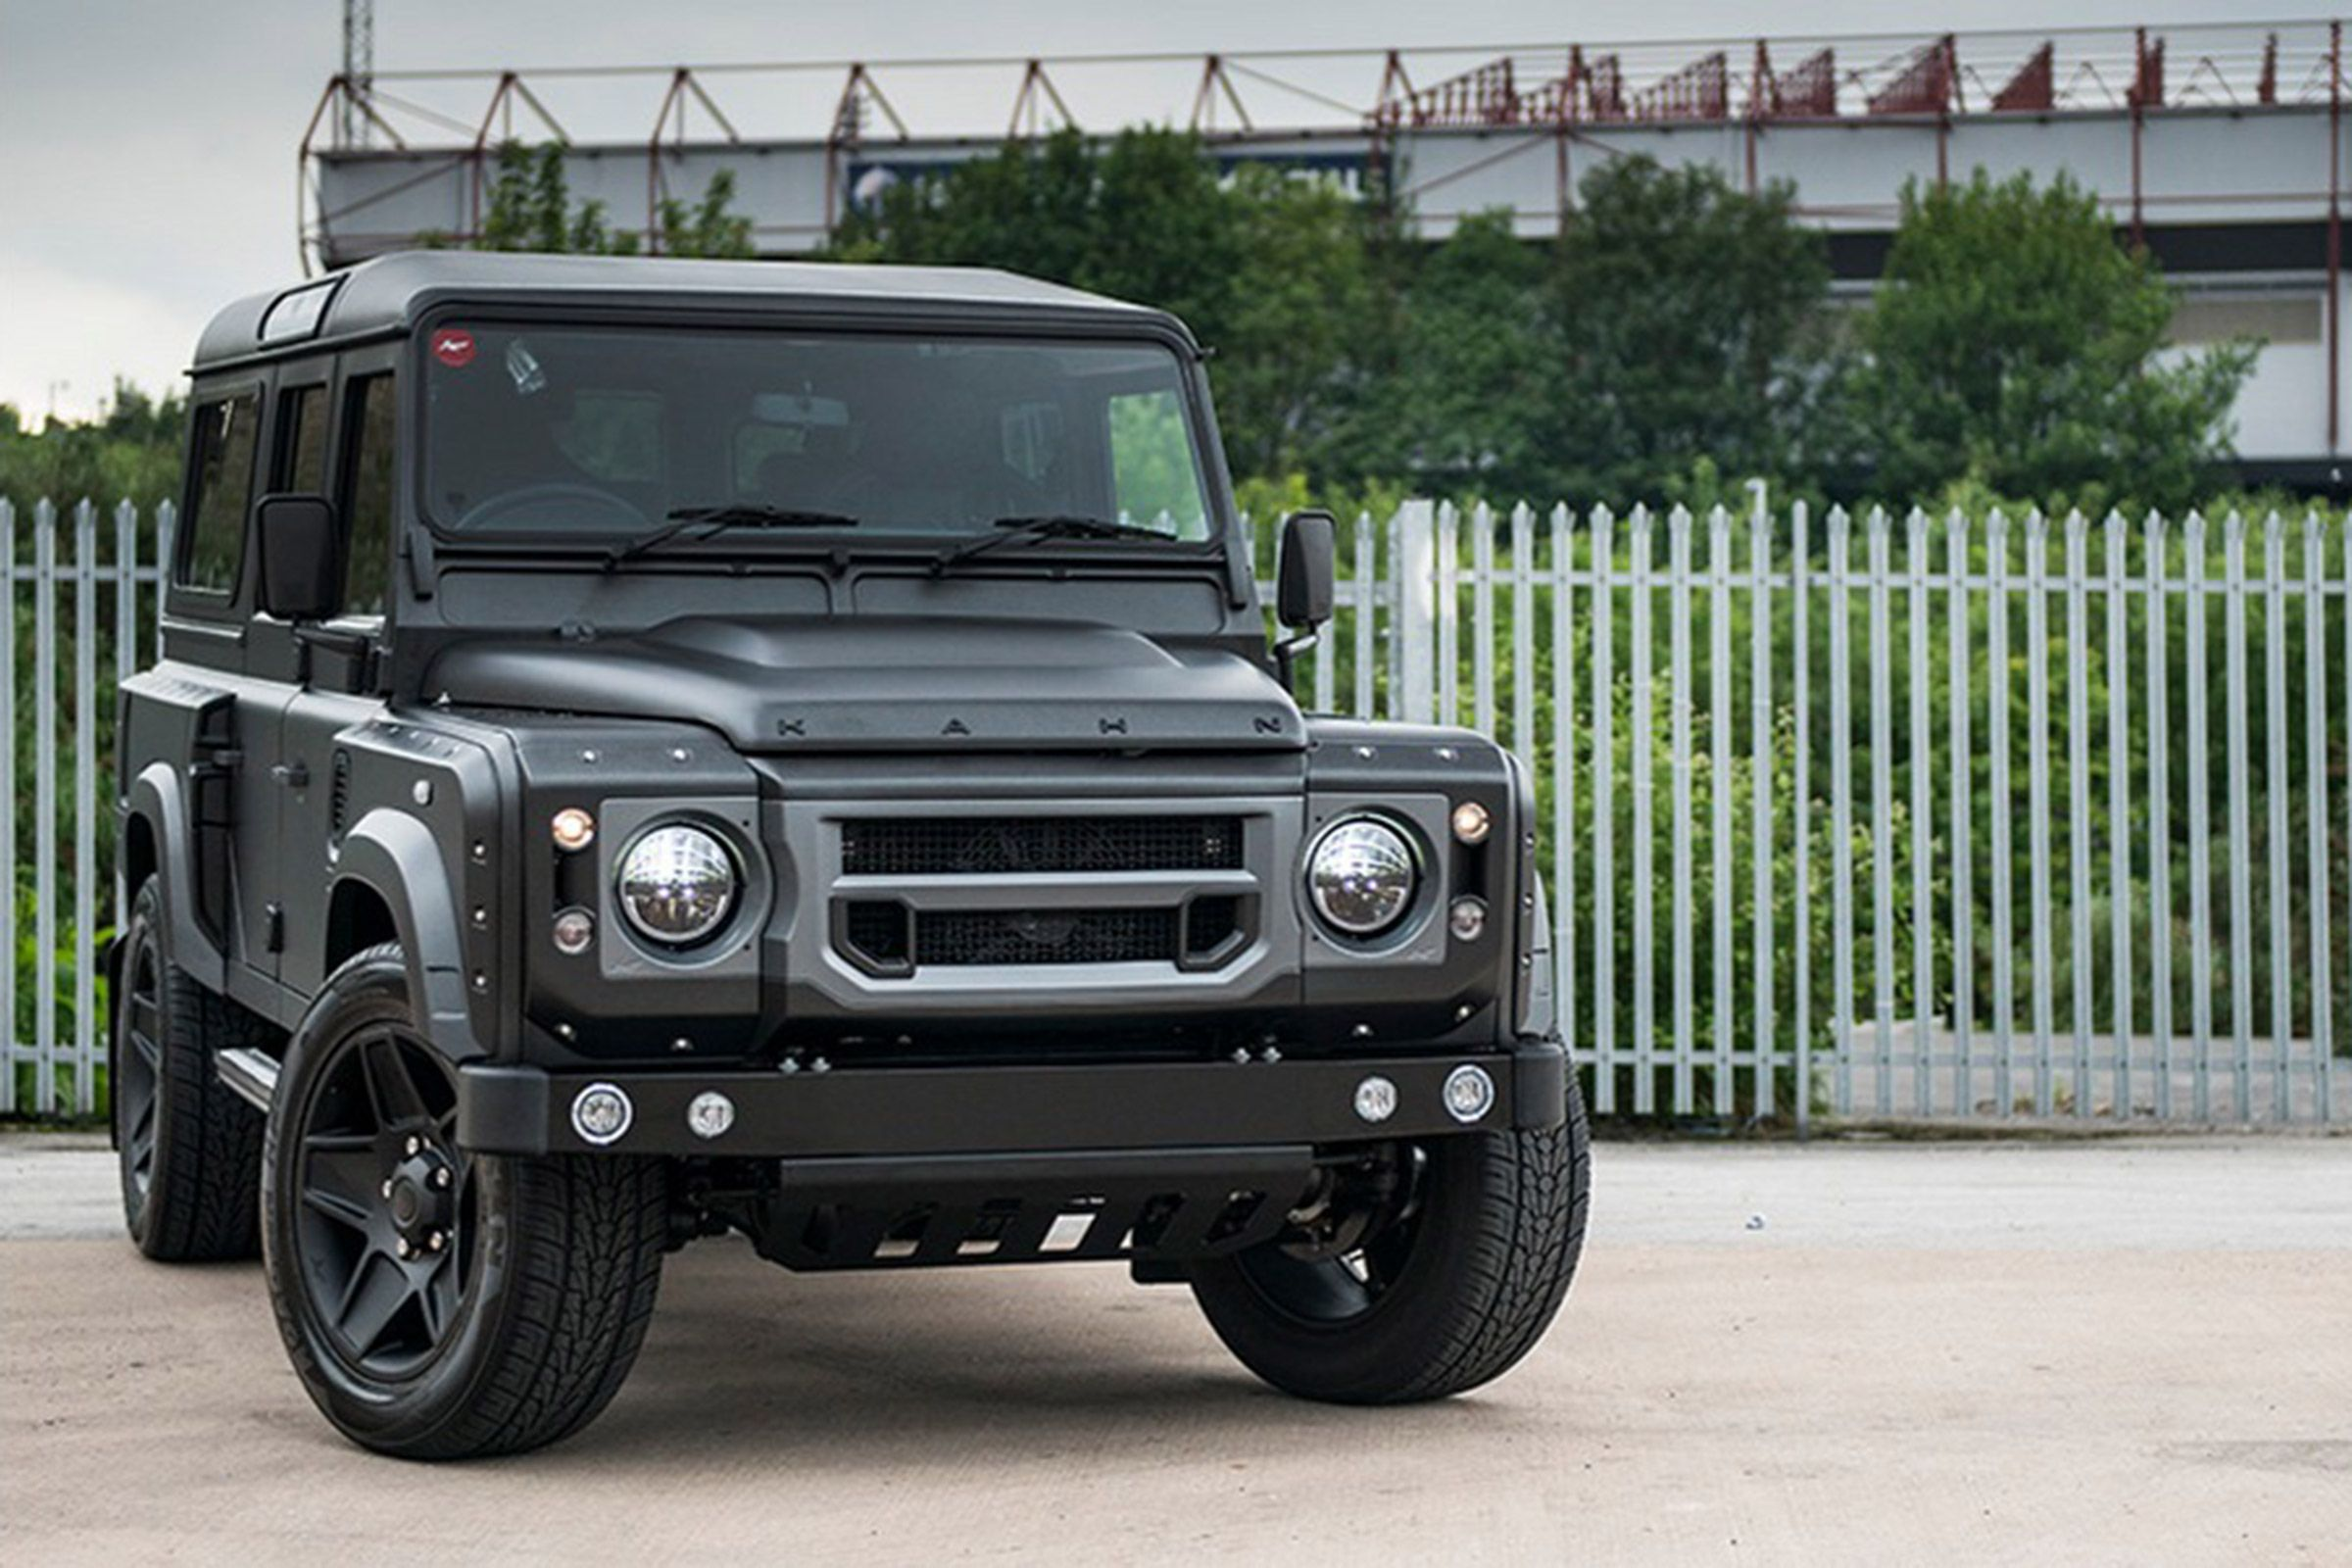 Land Rover Defender The End Edition luxuriousautomotive